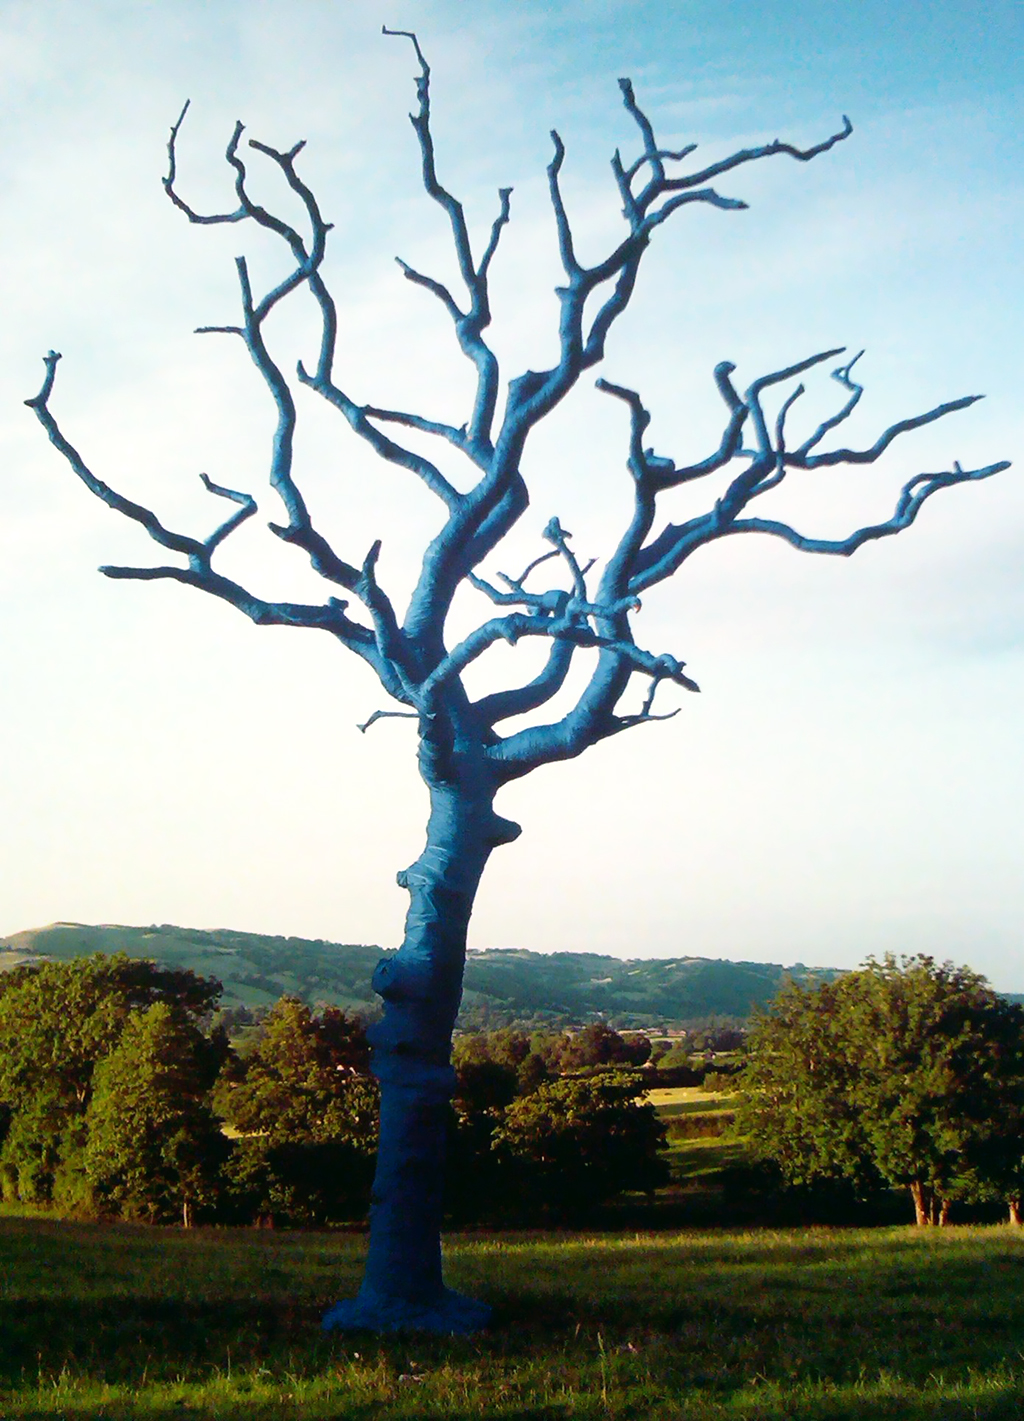 Bound – Tree Art in Wales